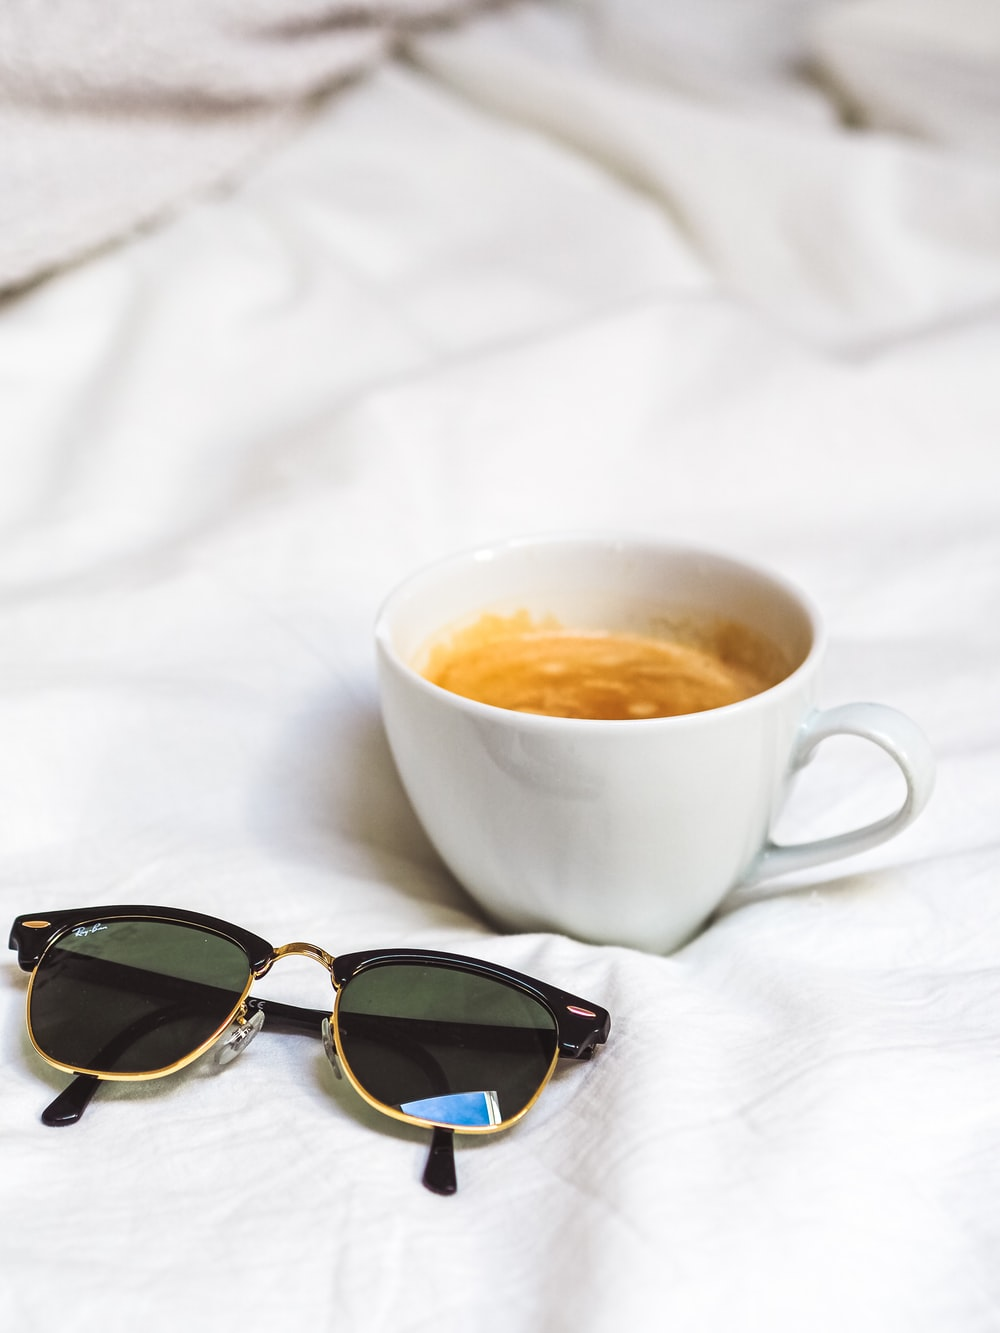 brown sunglasses beside white ceramic cup on white textile